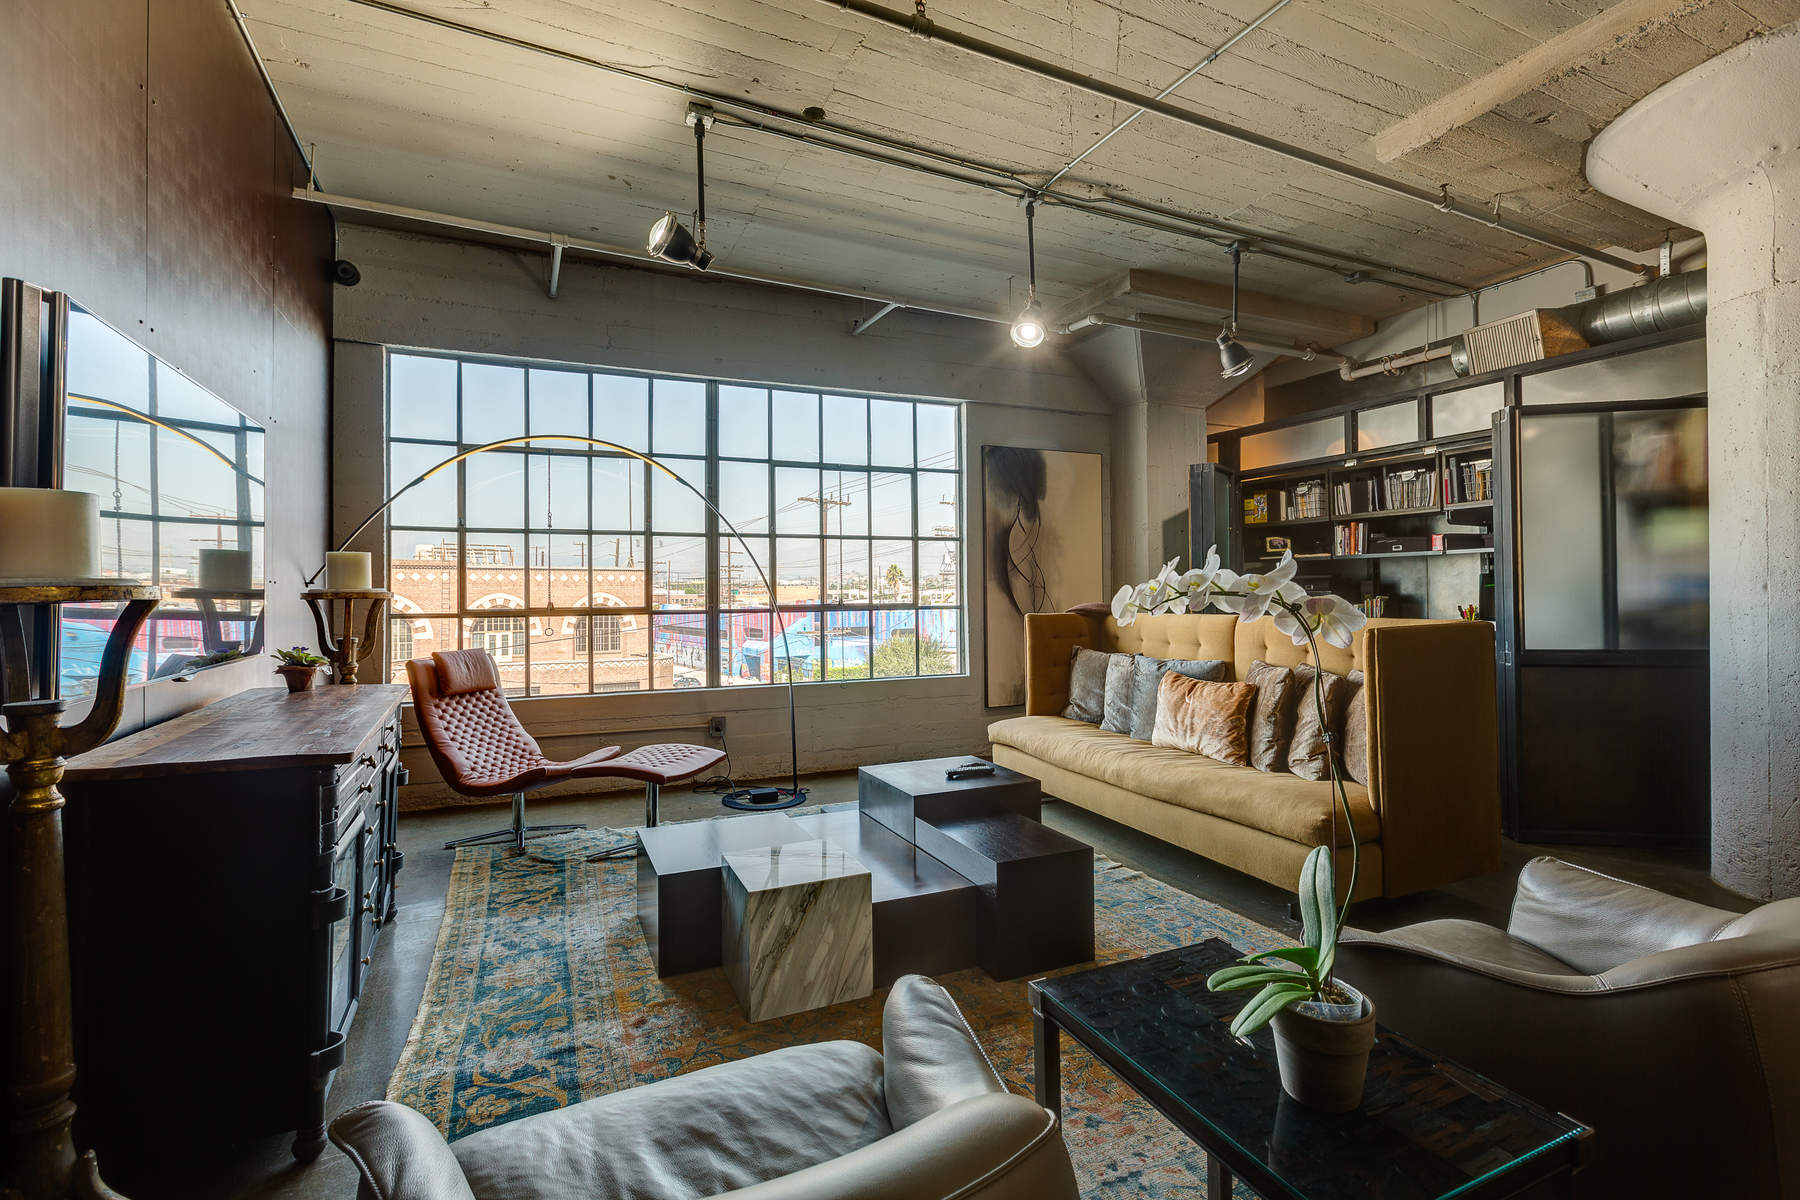 Condominium for Sale at Arts District Toy Factory Designer Loft 1855 Industrial Street Unit 418 Los Angeles, California 90021 United States